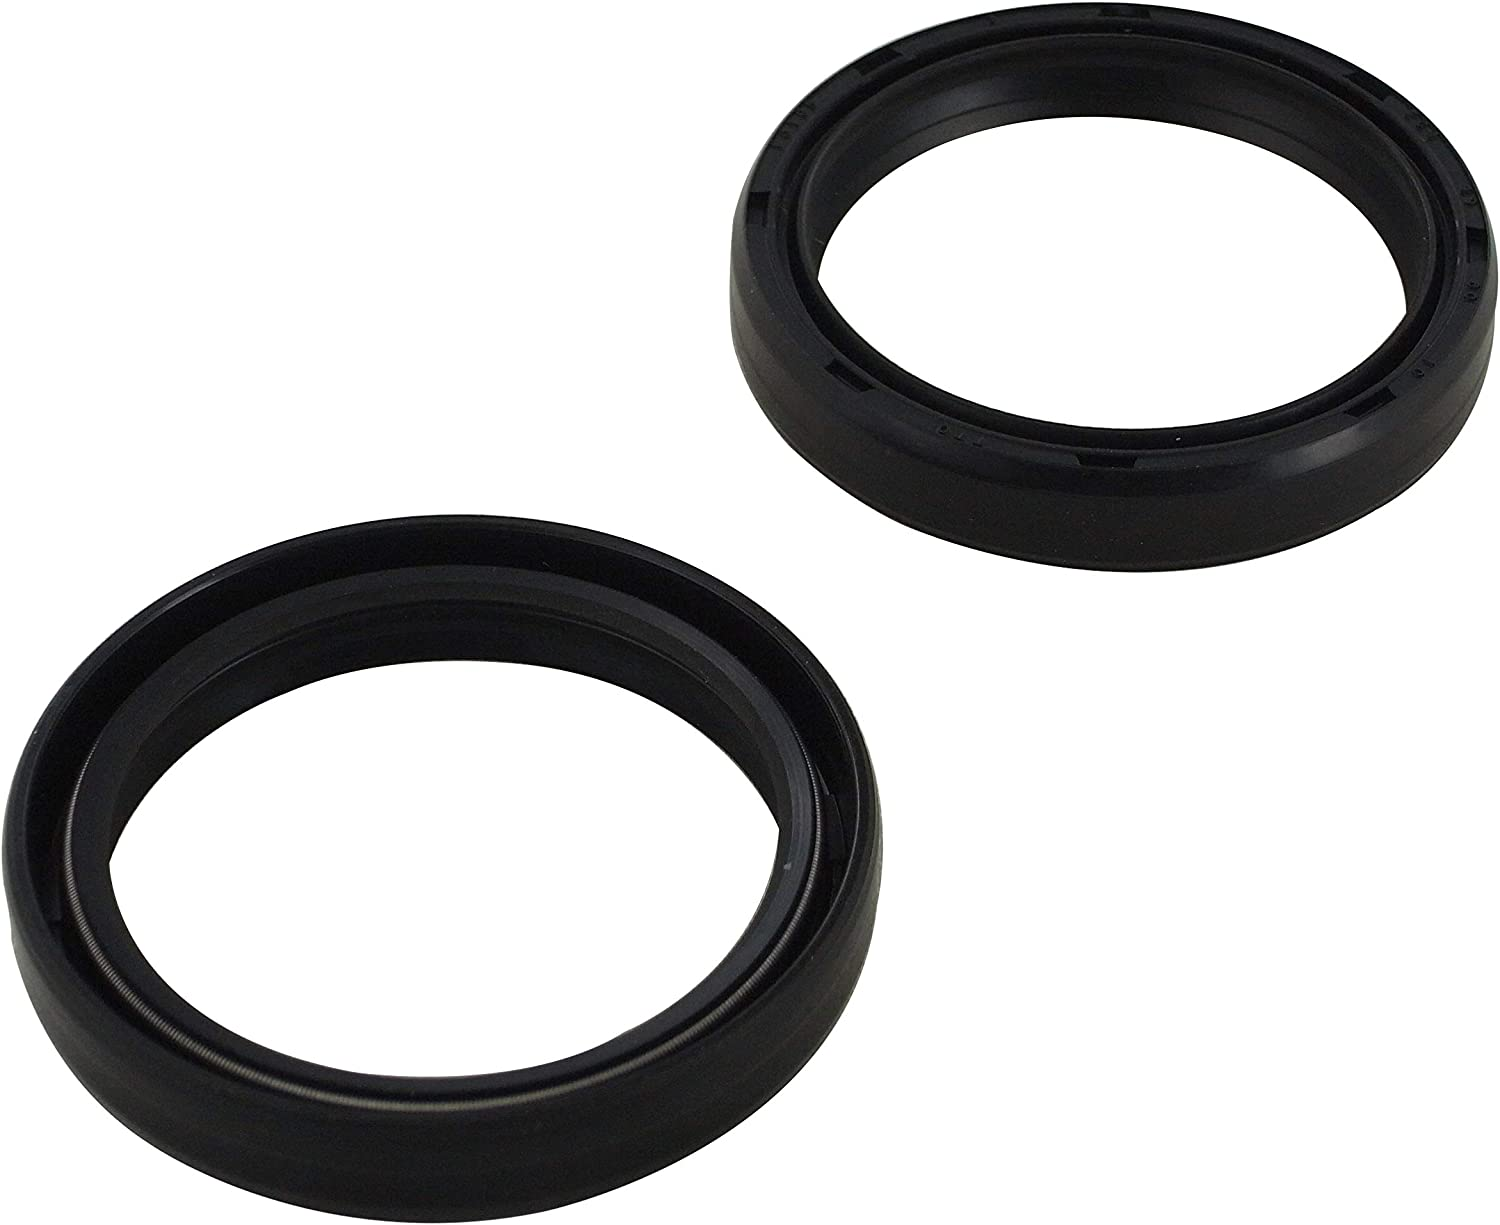 New HQ Powersports Fork Oil Seals Replacement For Suzuki RM125 1996 1997 1998 1999 2000